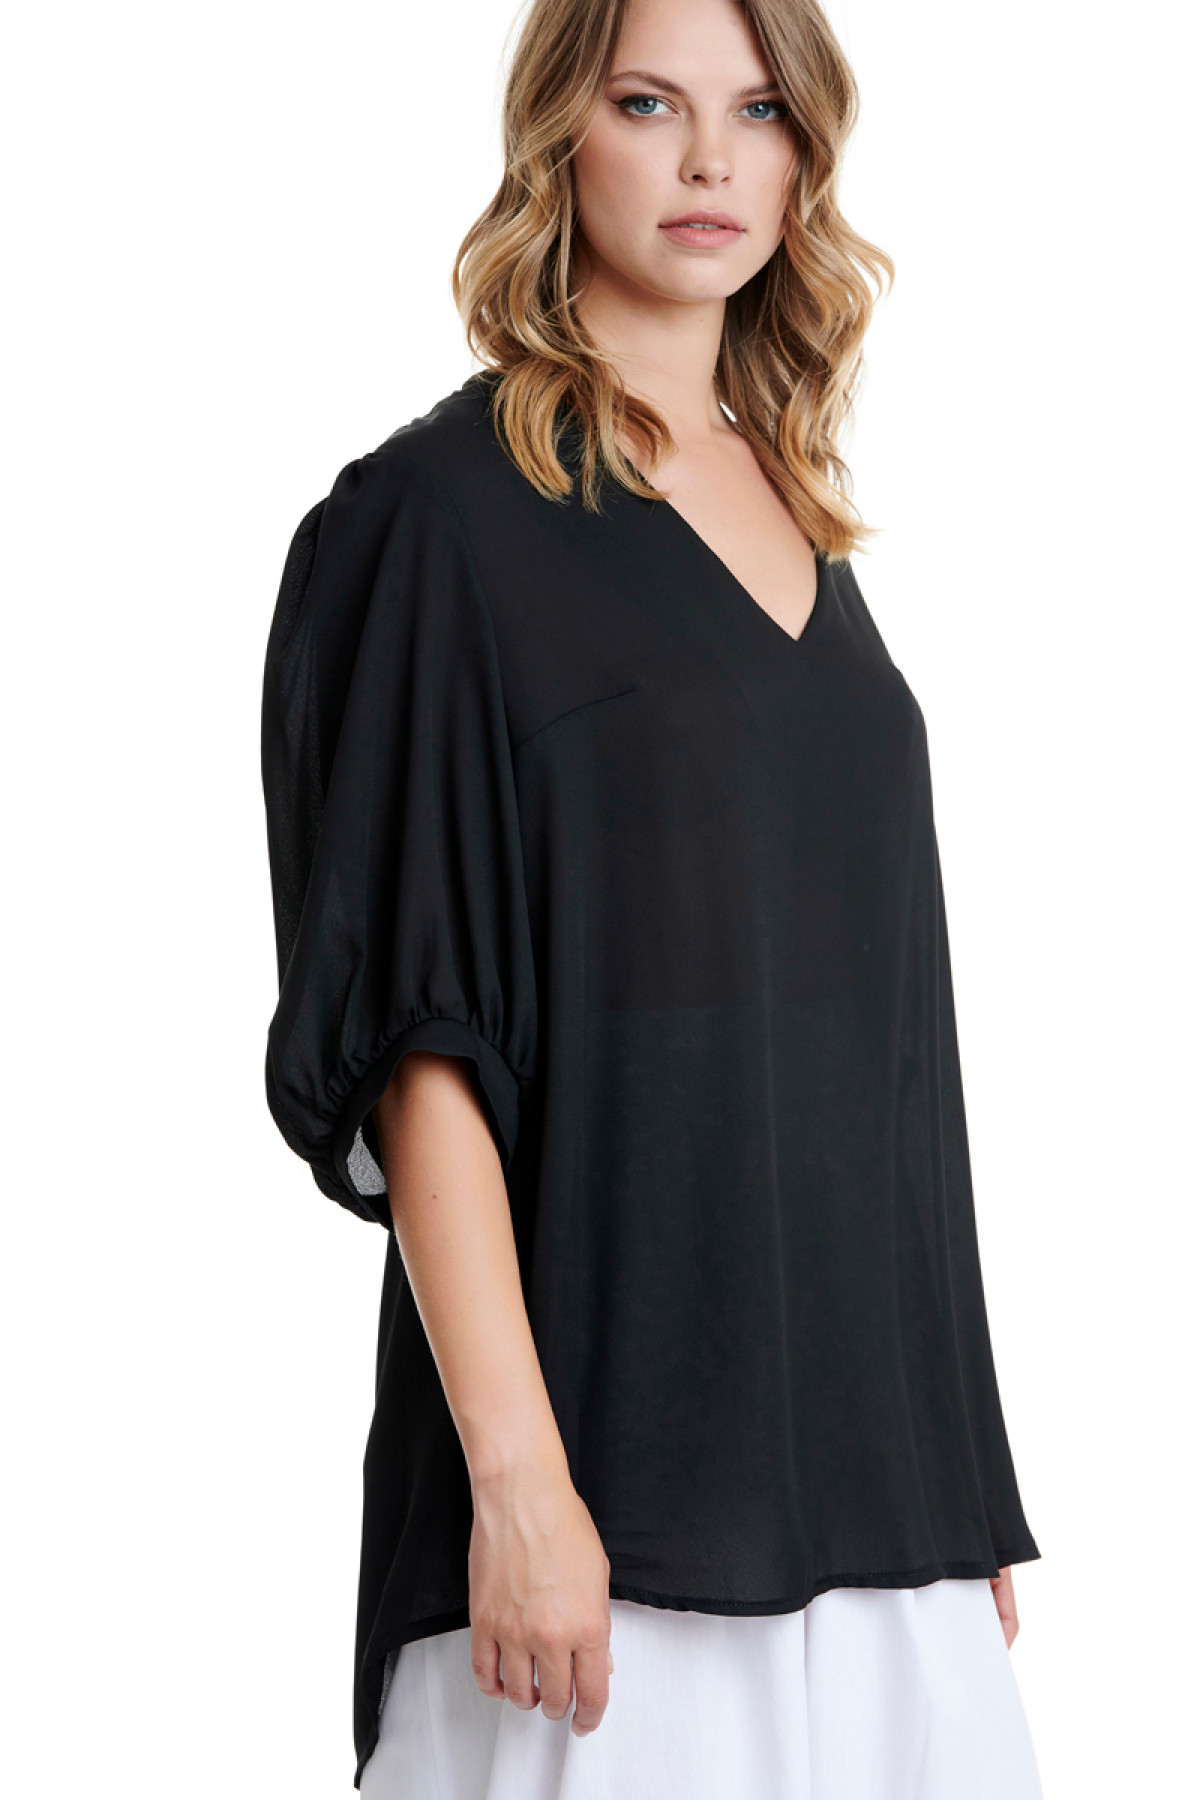 BLACK LONG CHIFFON BLOUSE